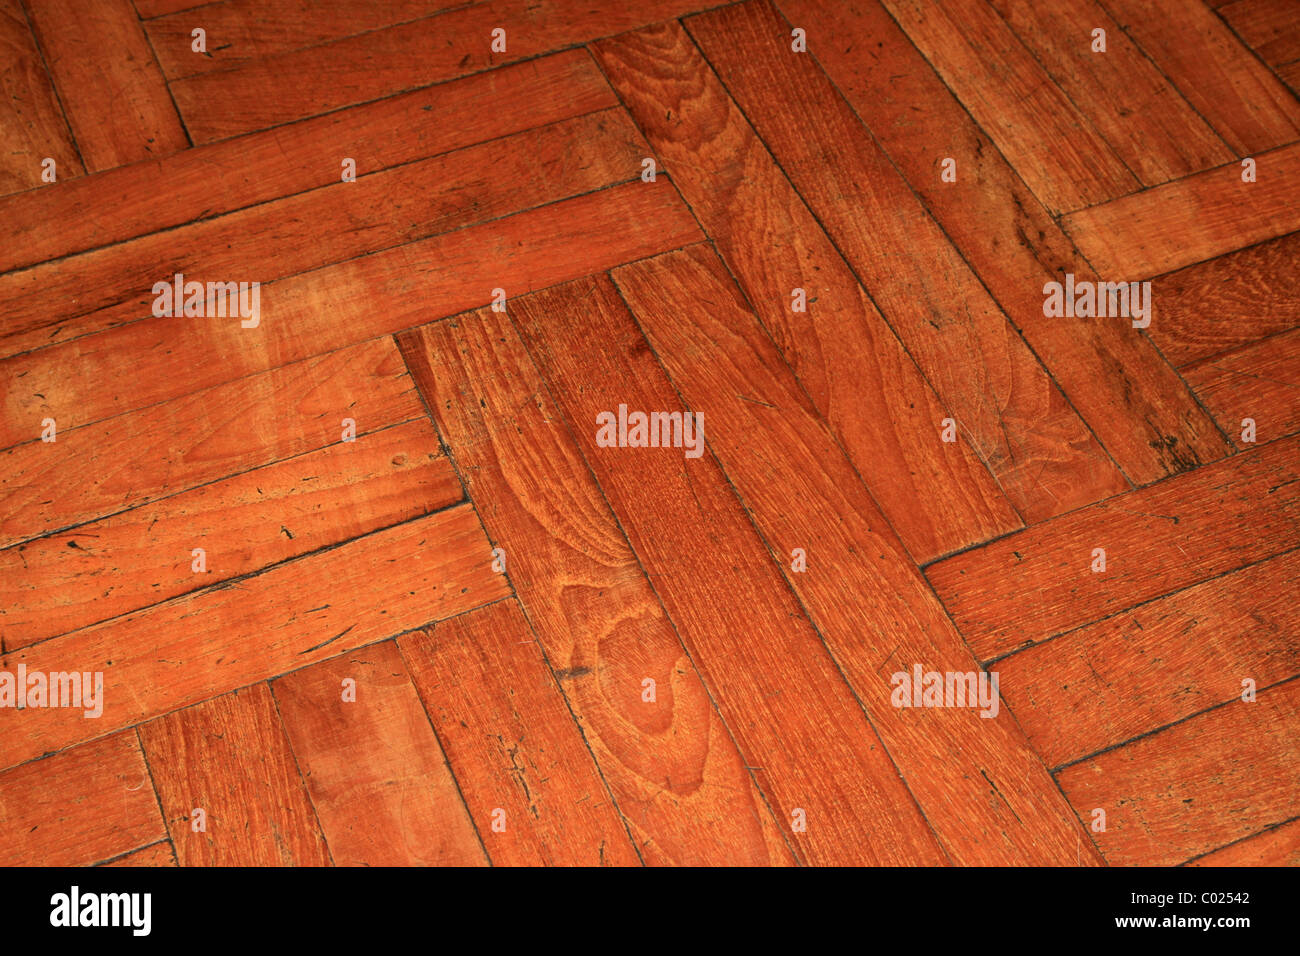 angled view of an old parquet wood floor - Stock Image